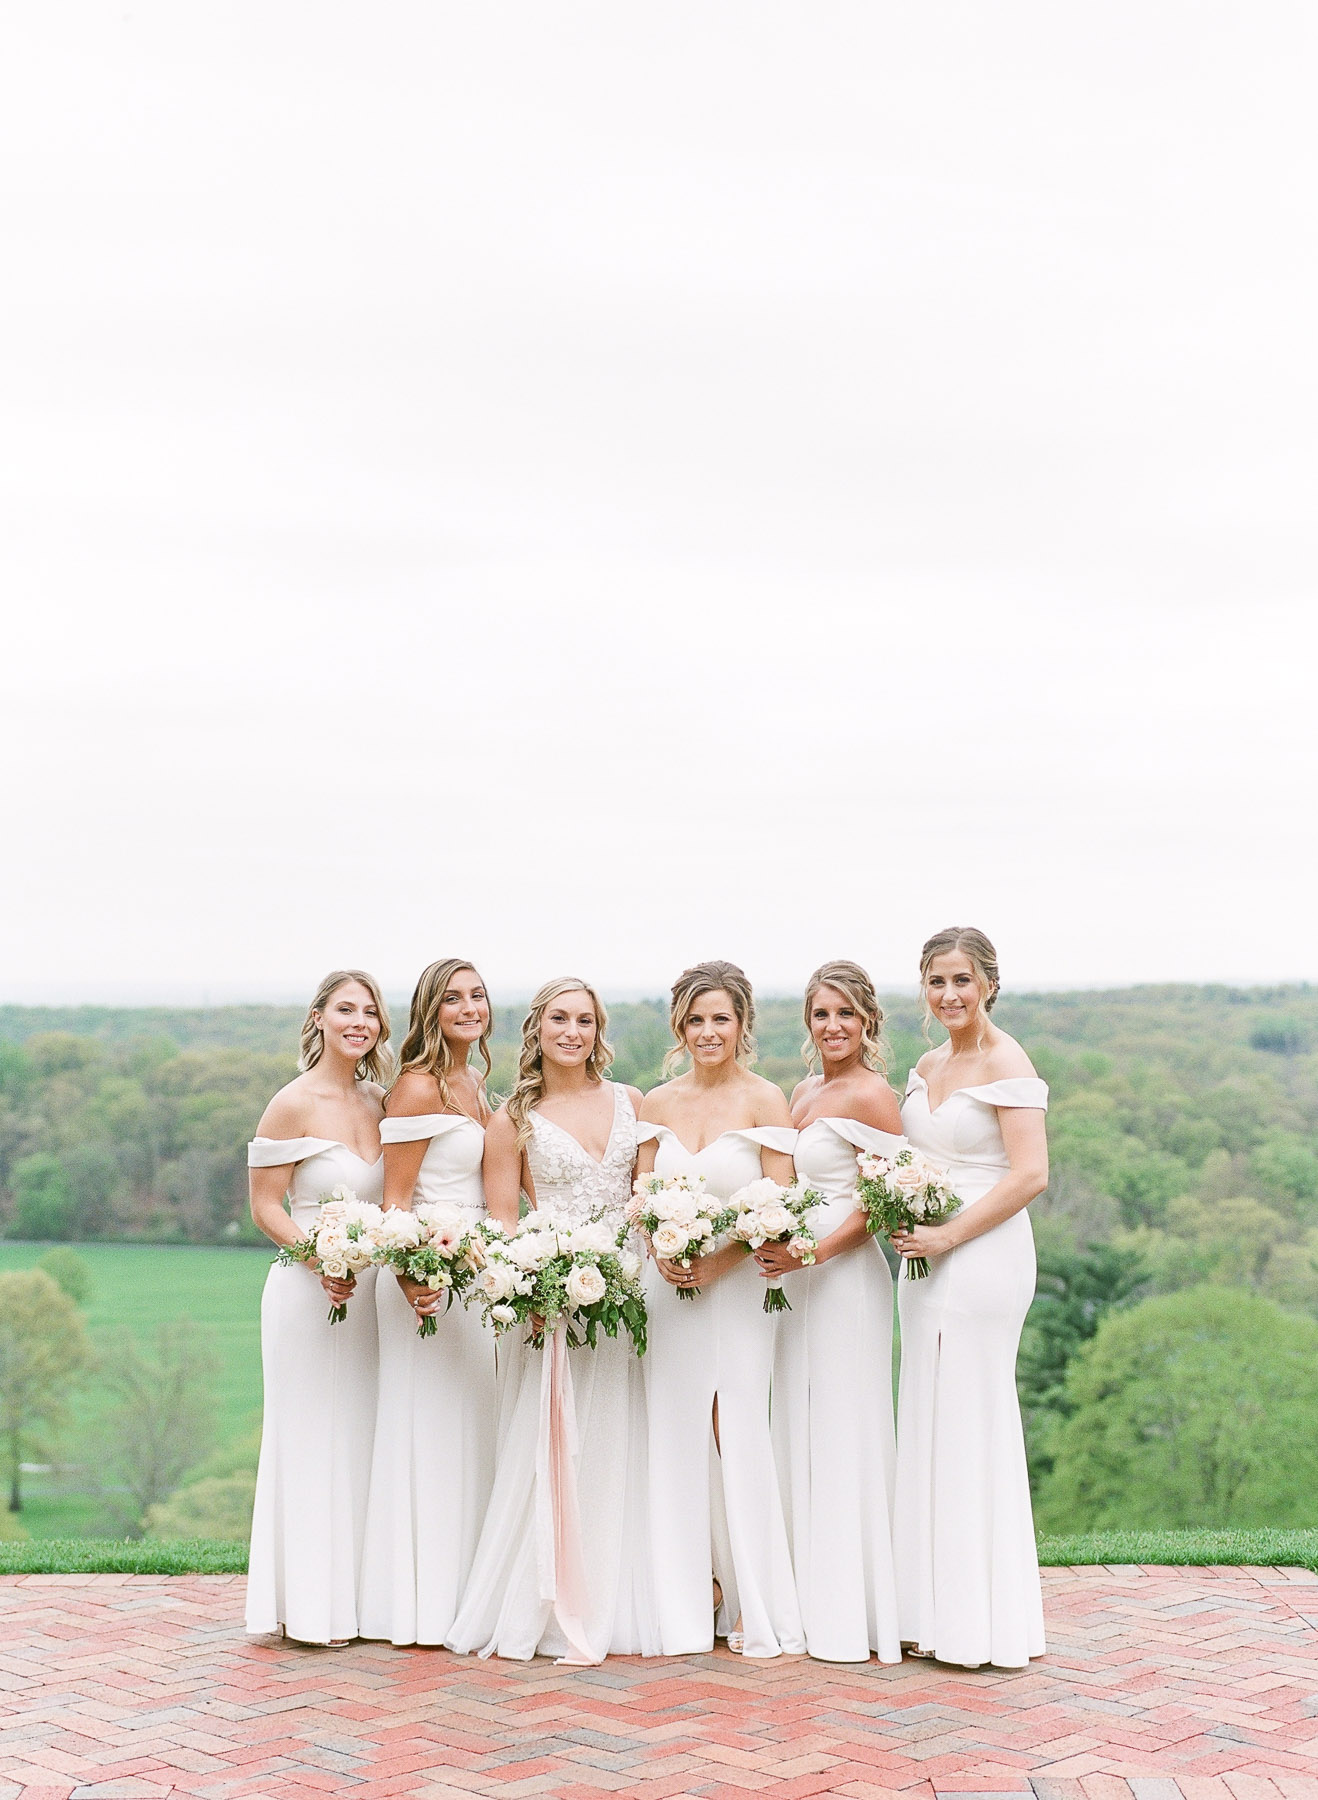 Bridesmaids in white dresses at NJ wedding at Natirar Mansion